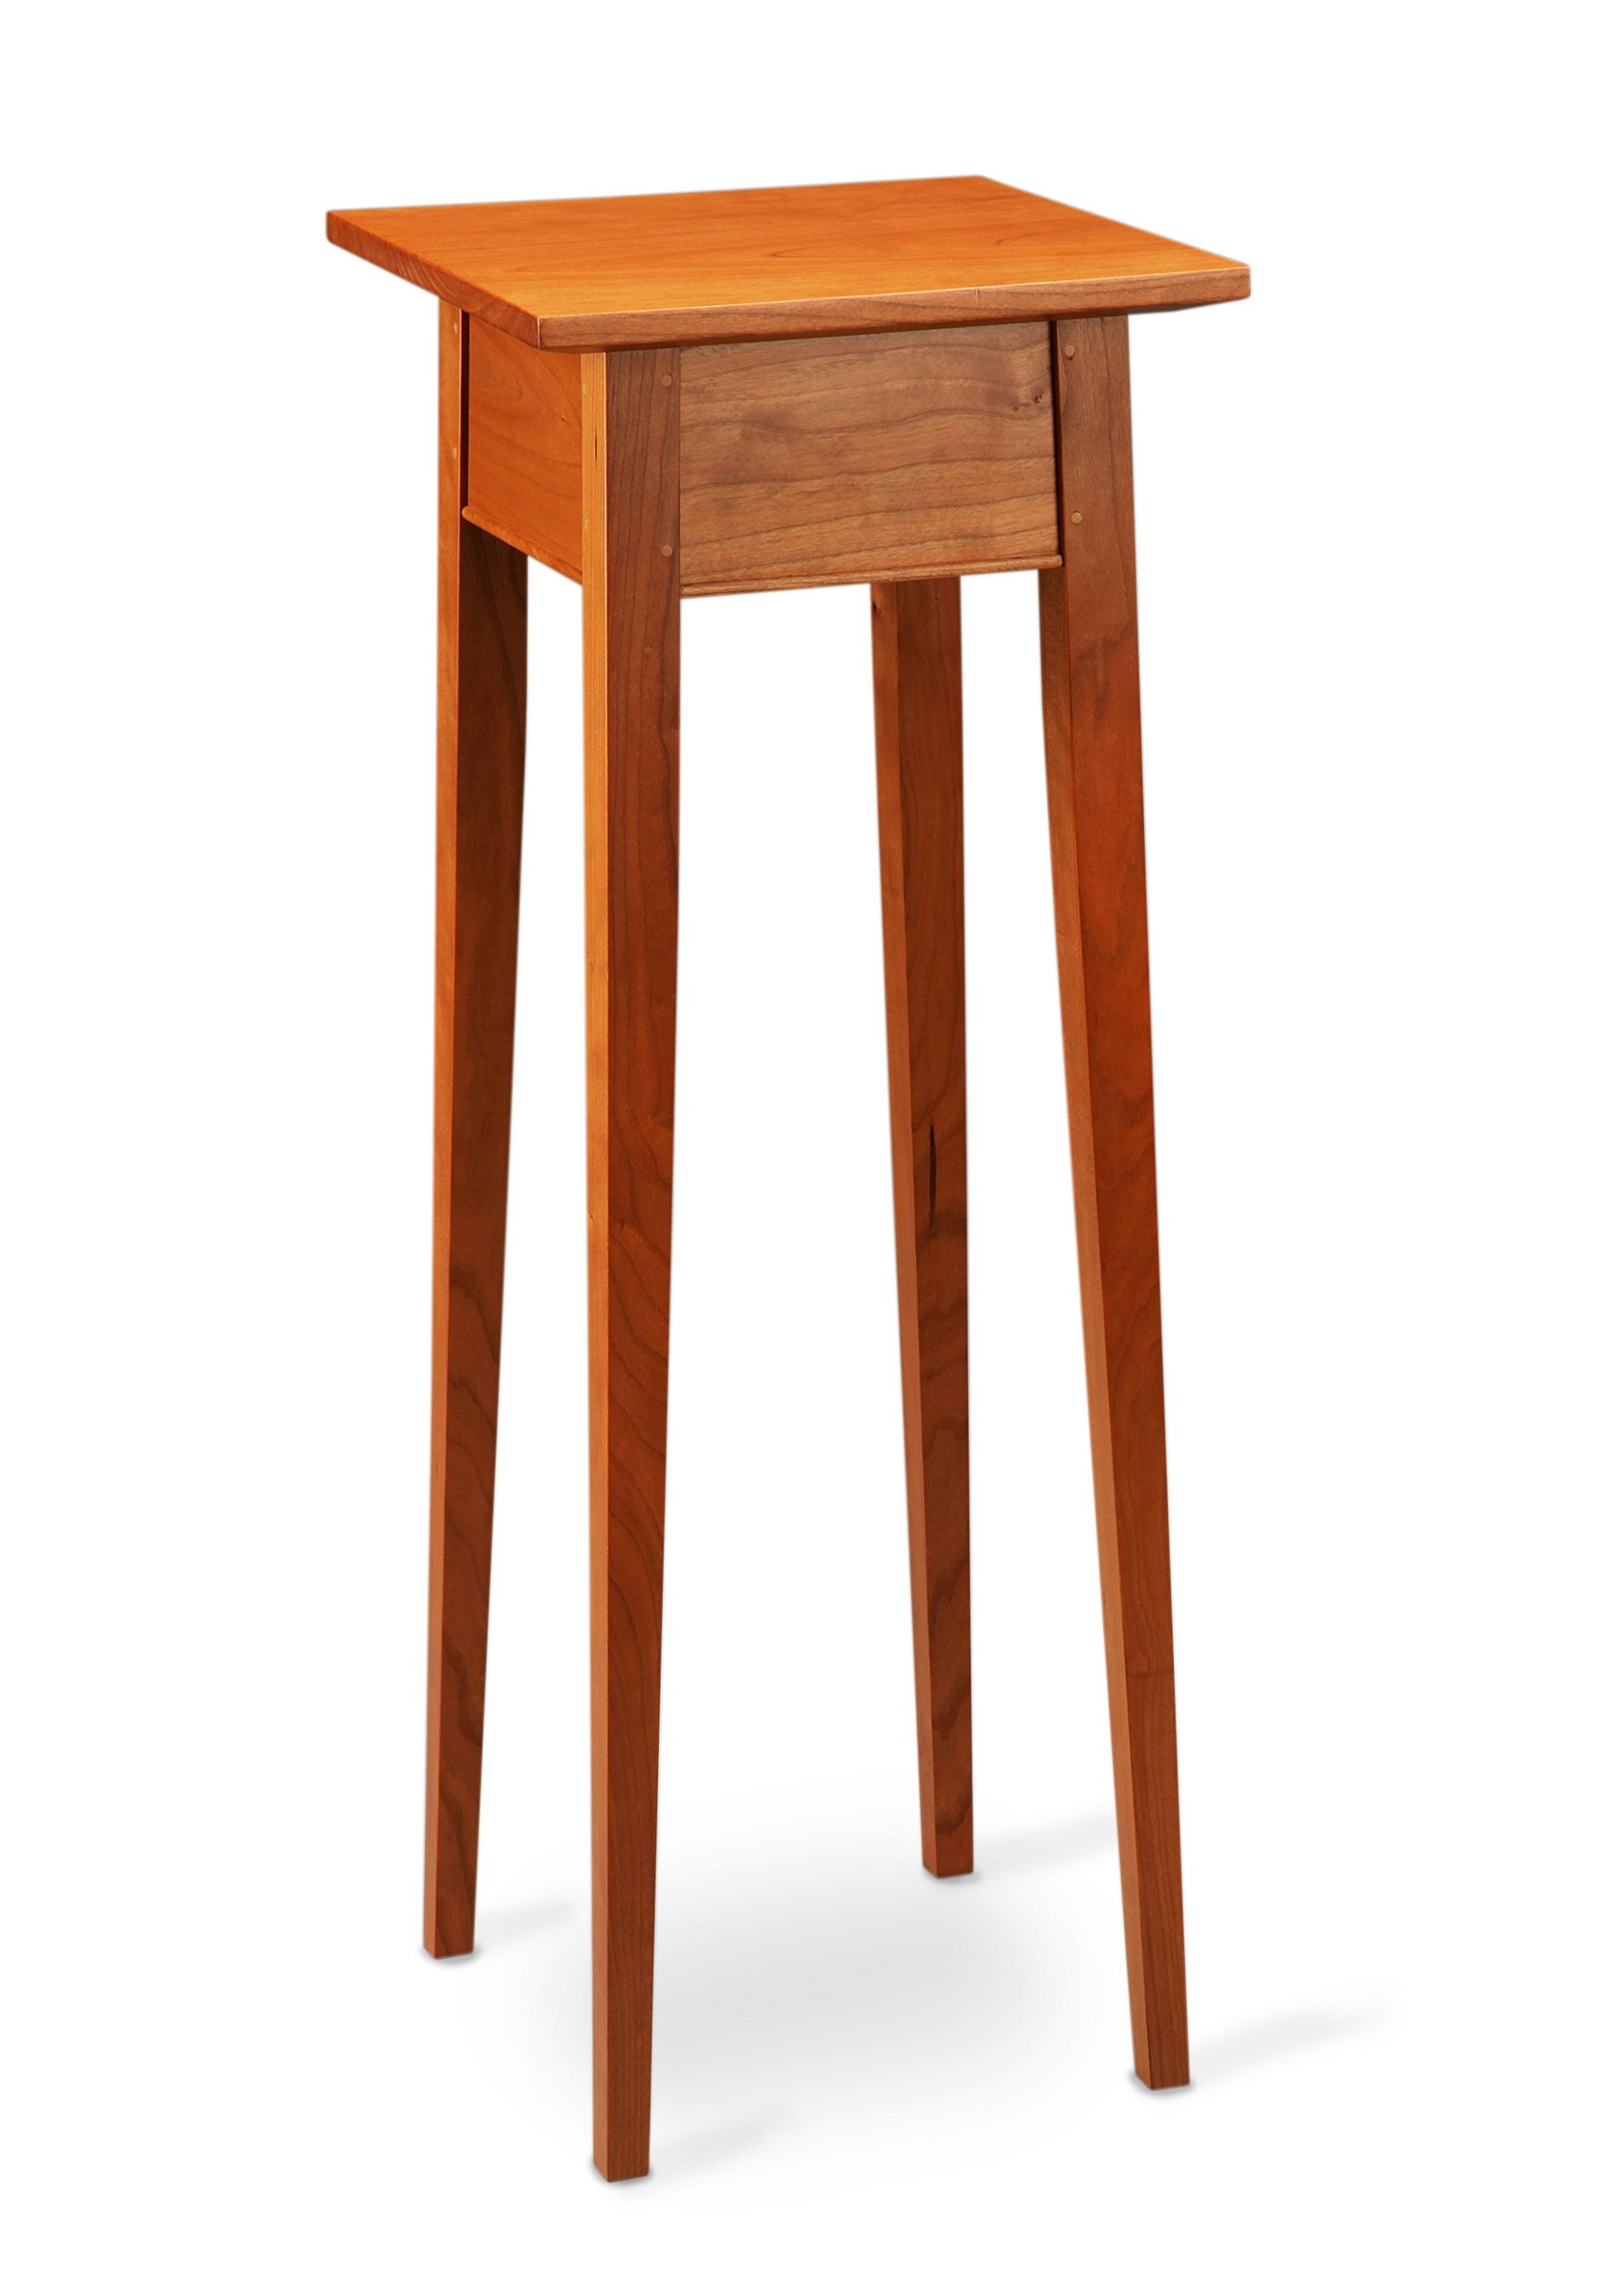 Tall Splay By Tom Dumke Wood Pedestal Table Artful Home